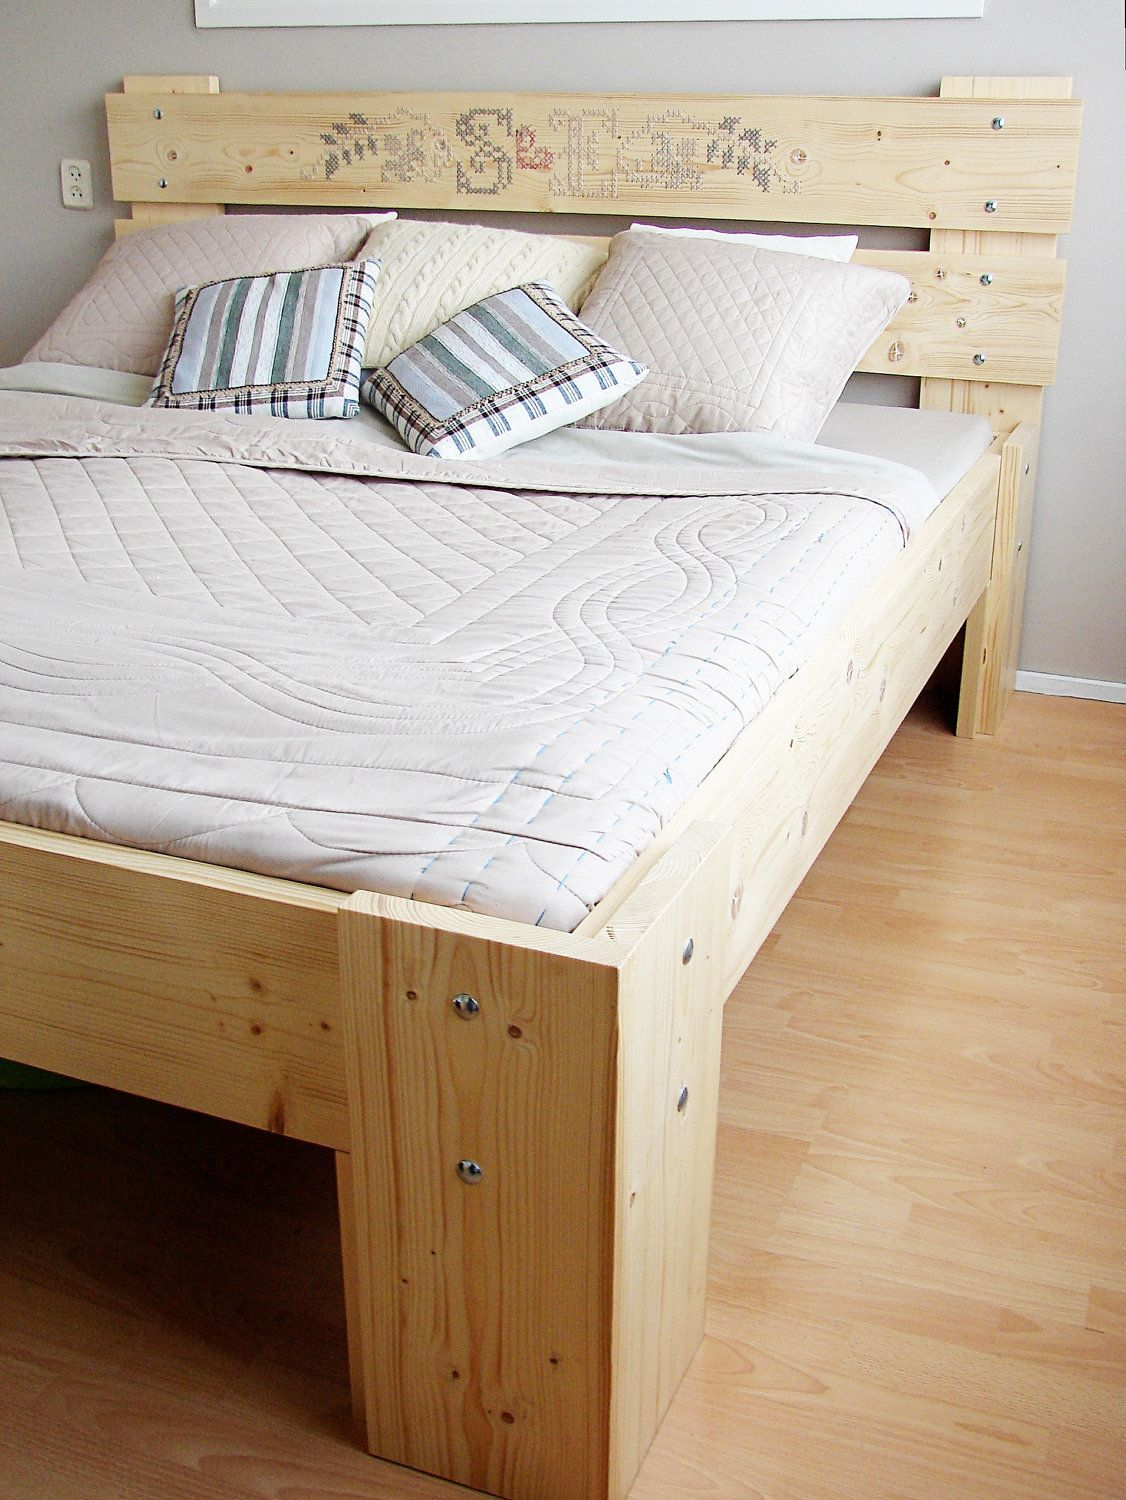 Love the look and shape of this rustic bed frame. Not keen